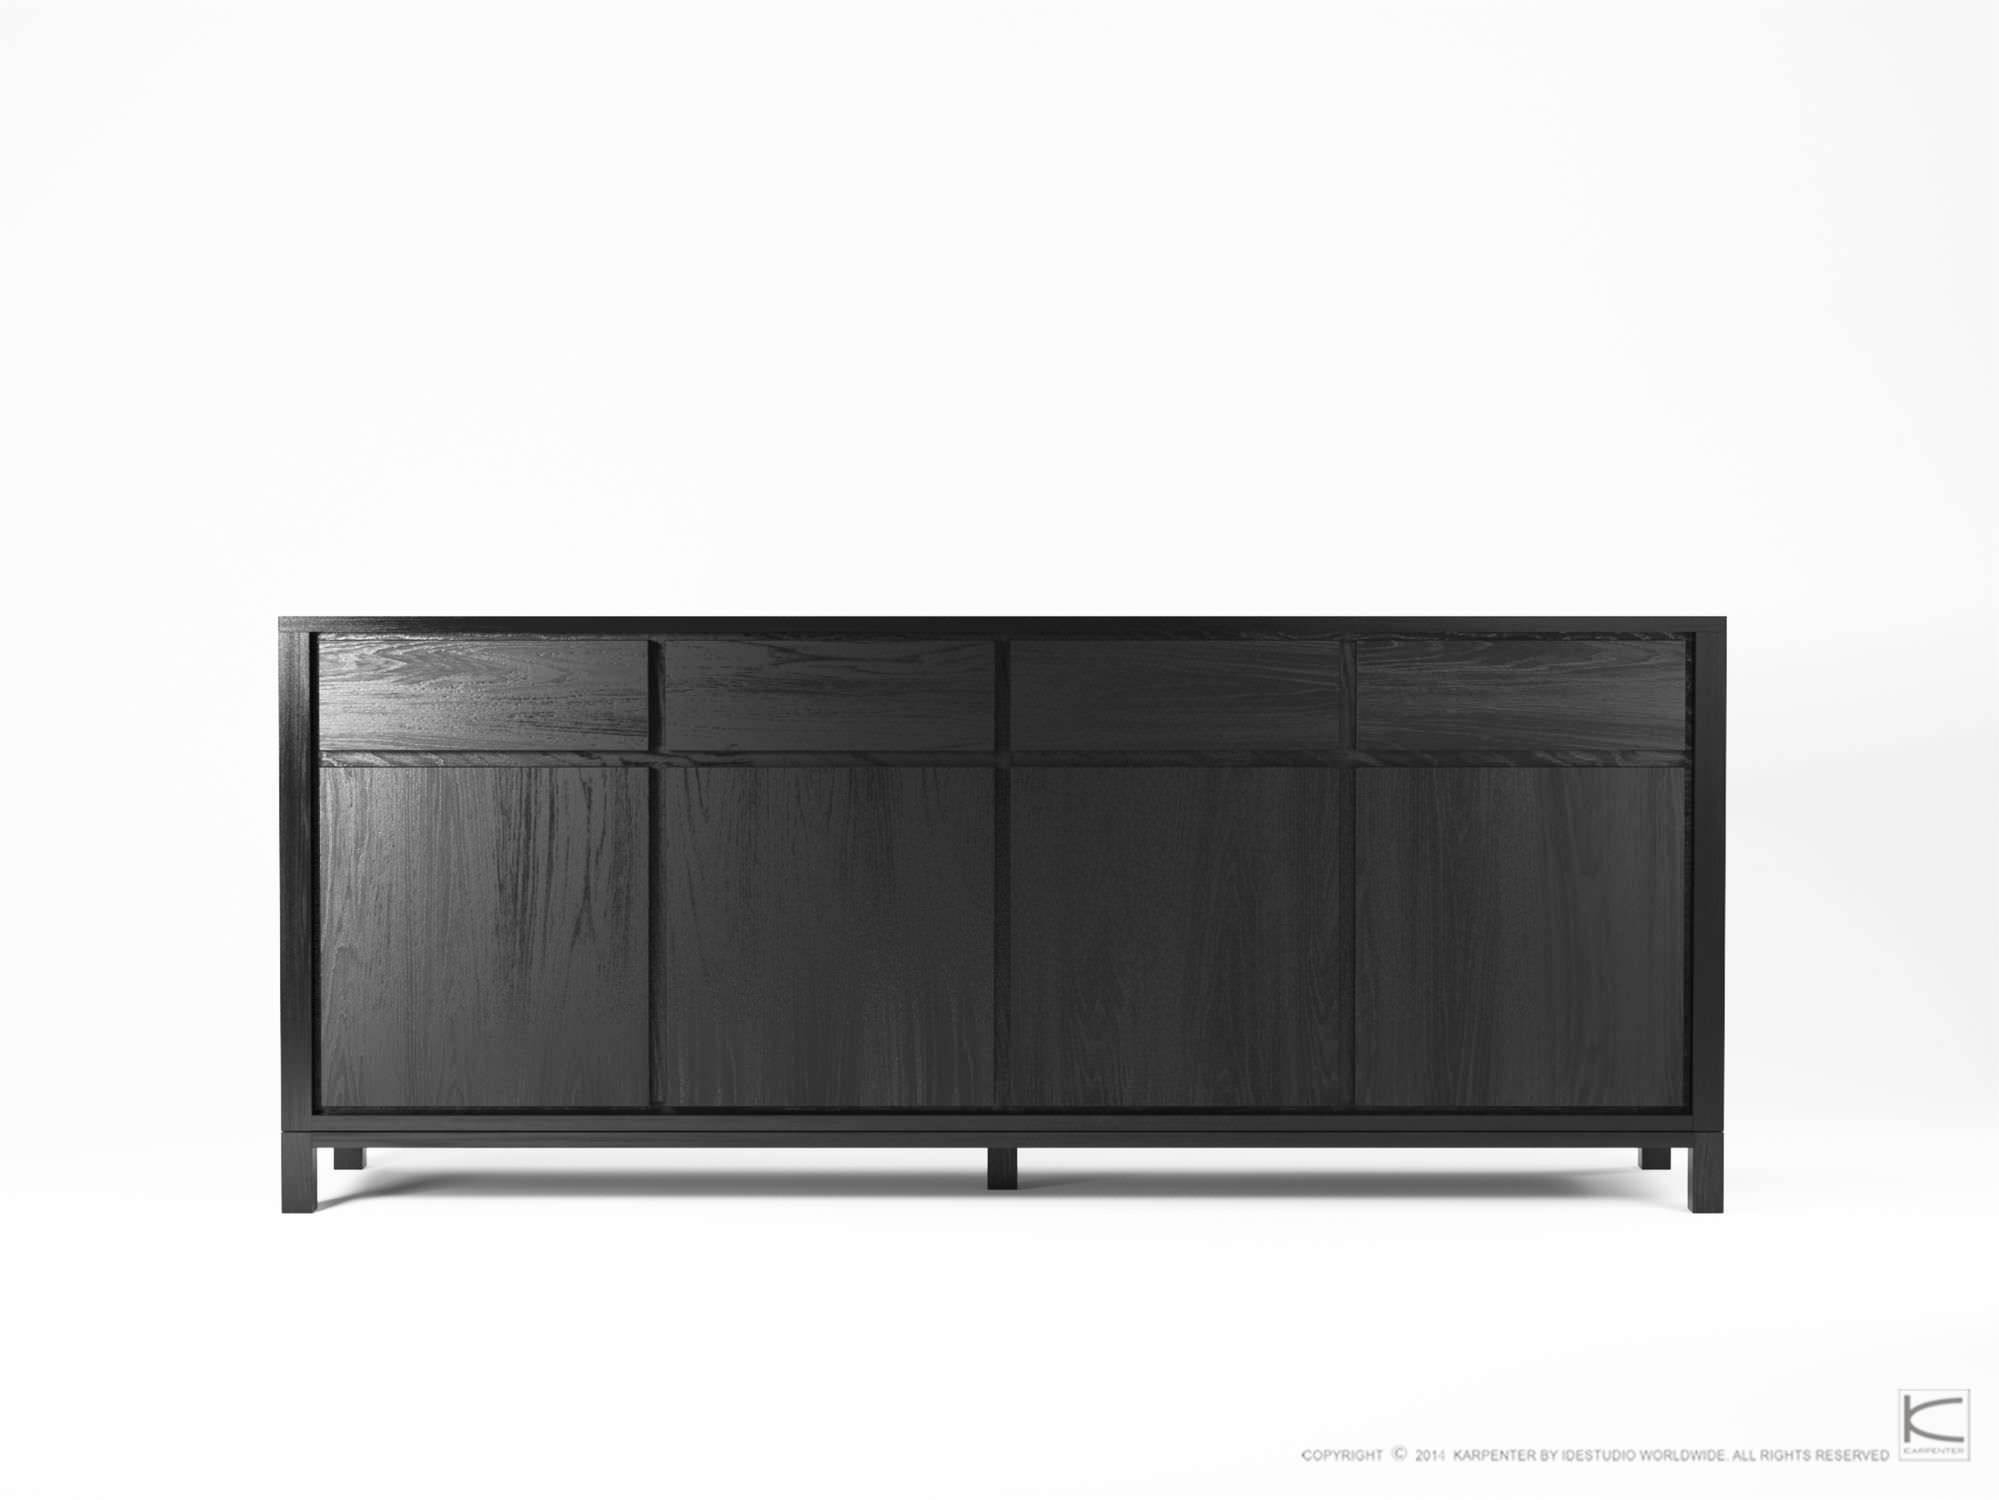 Contemporary Sideboard / Oak / Walnut / Solid Wood – So09 – Karpenter With Regard To Black And Walnut Sideboards (#7 of 15)